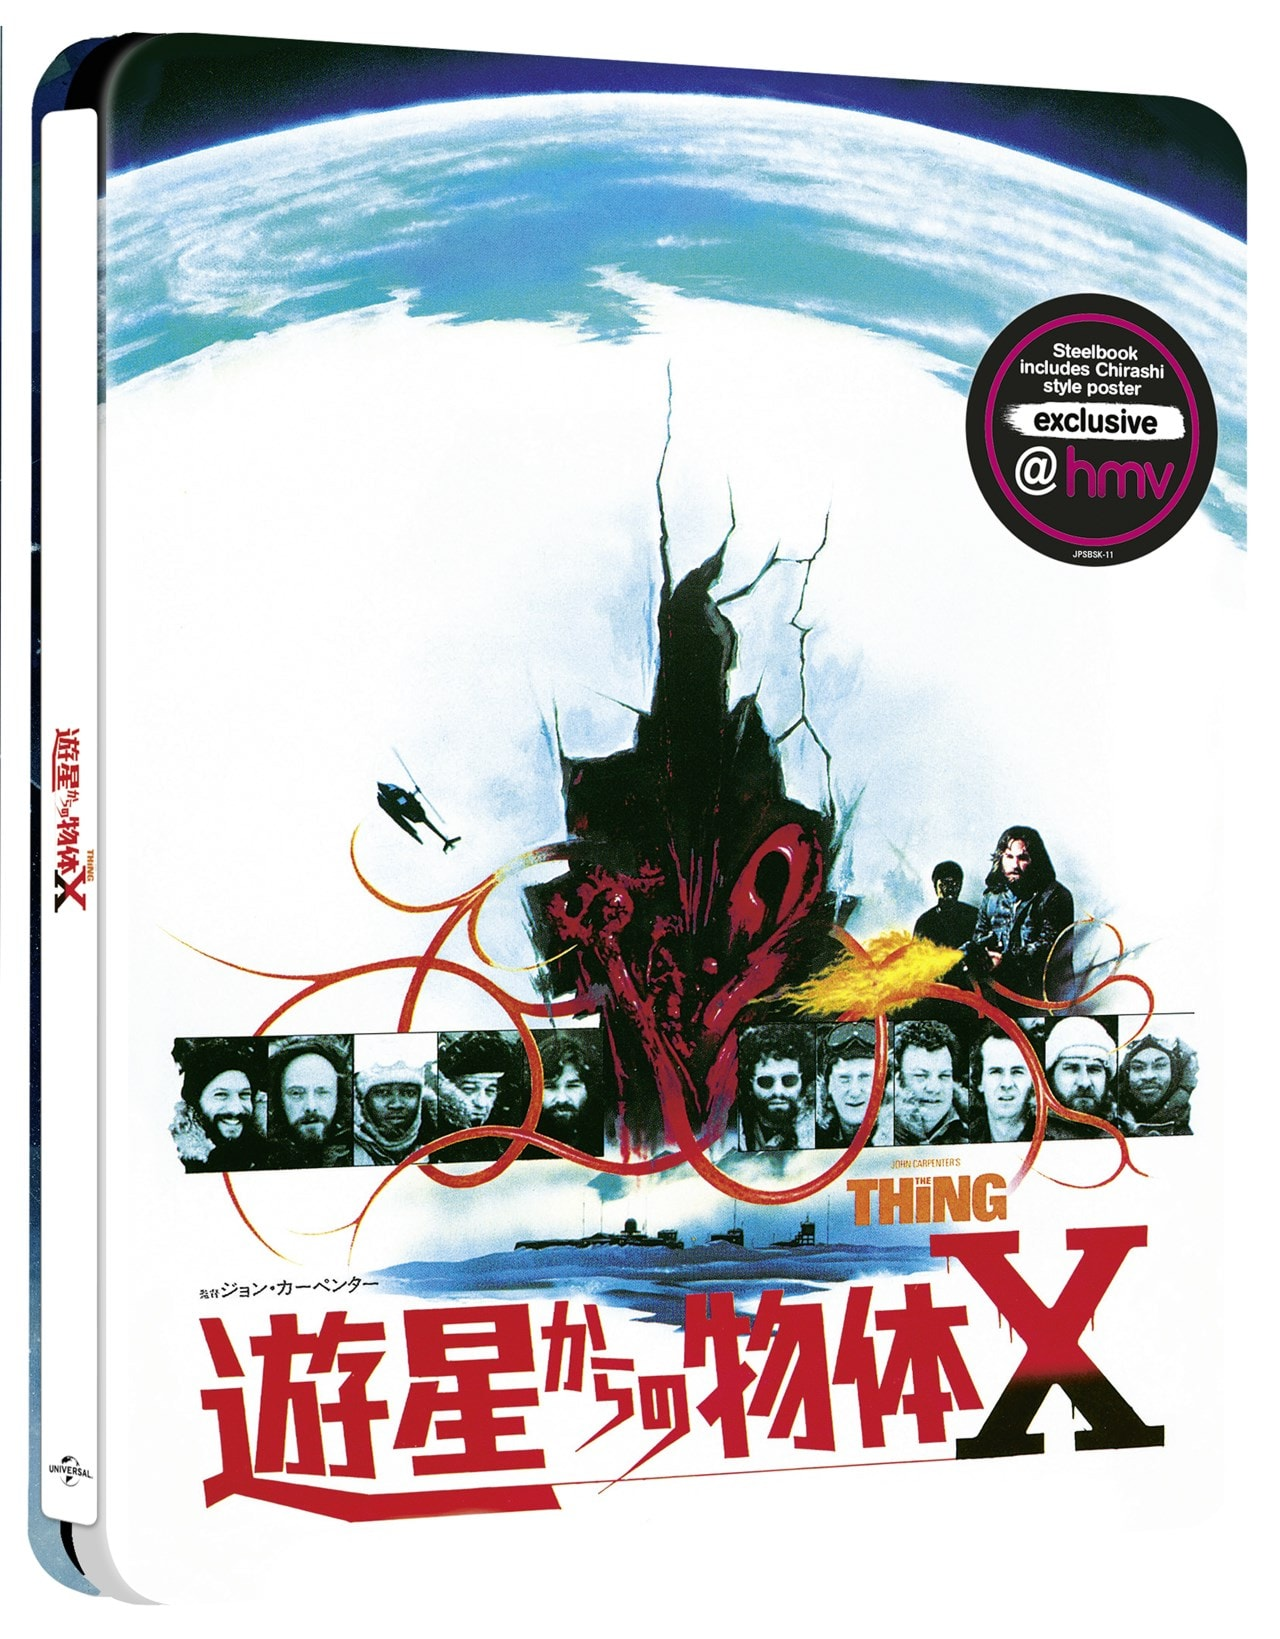 The Thing (hmv Exclusive) - Japanese Artwork Series #3 Limited Edition Steelbook - 1